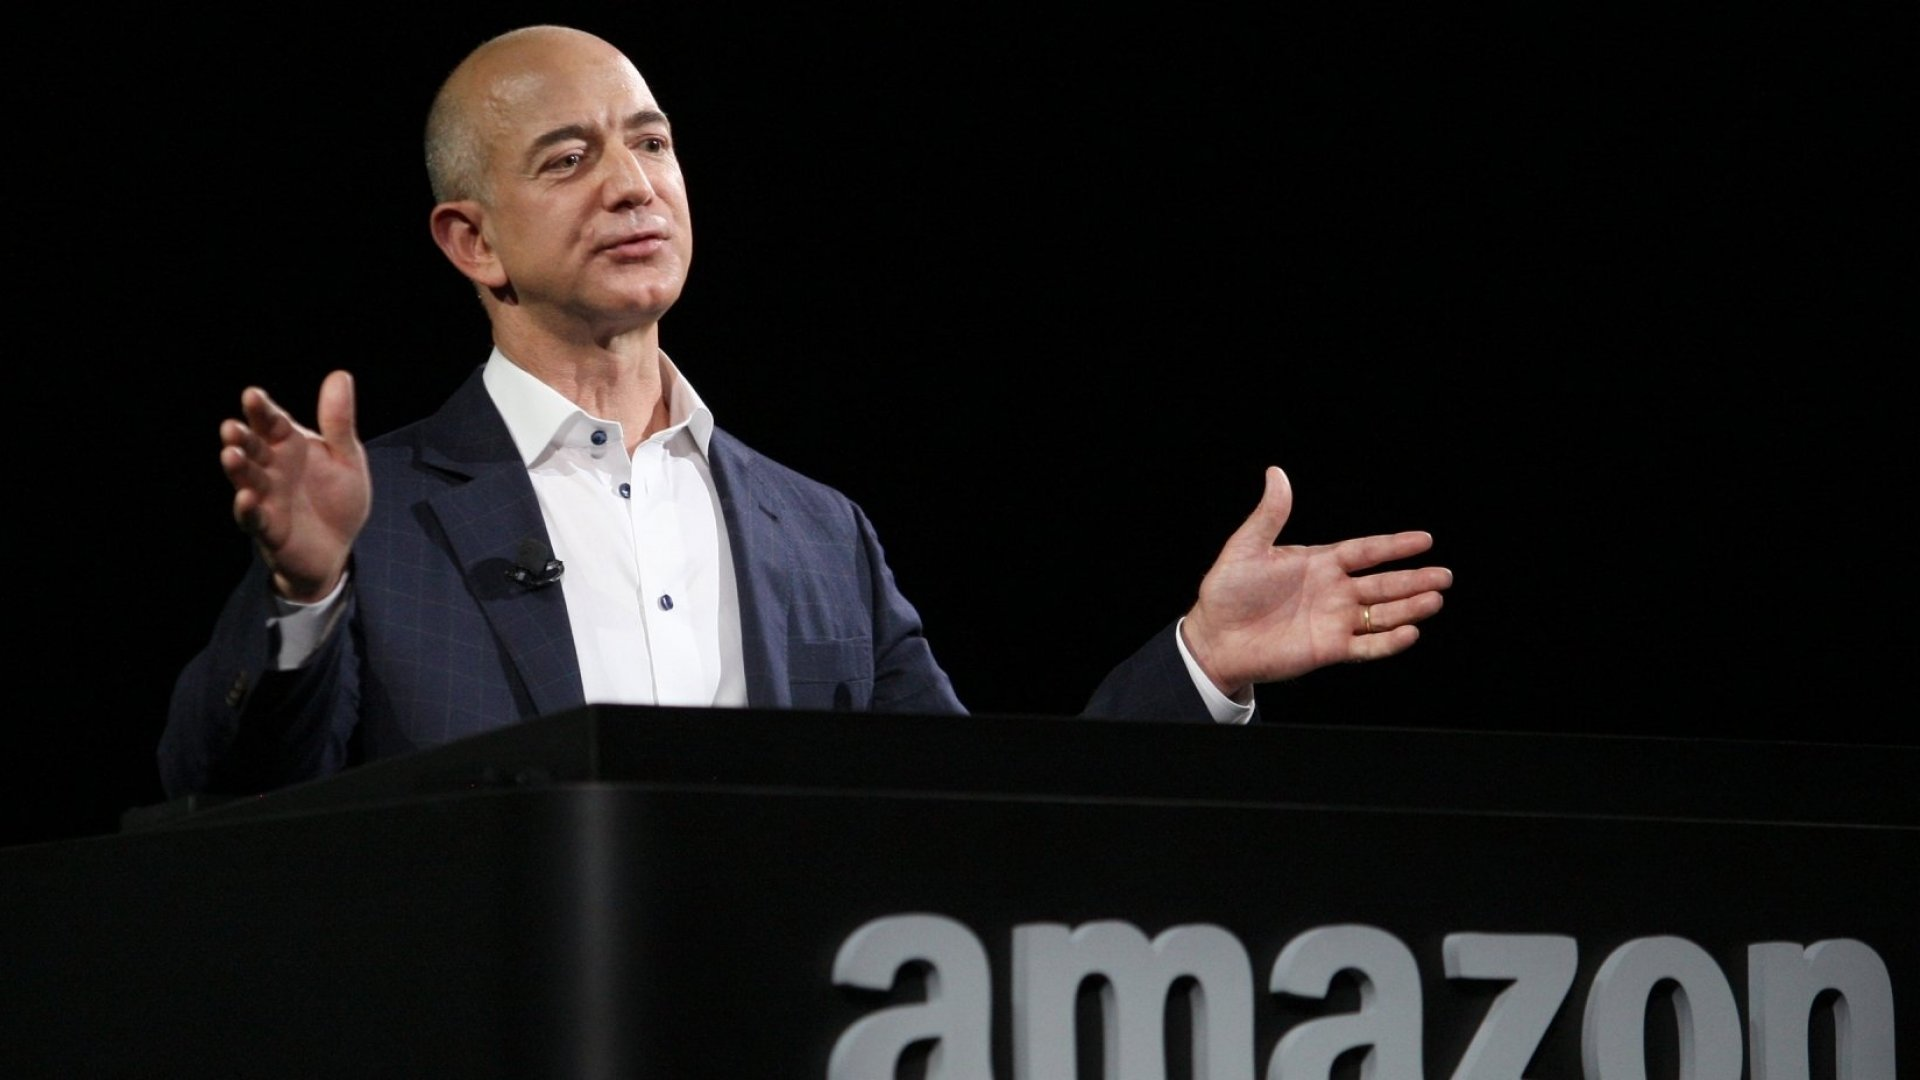 I Emailed Jeff Bezos and Actually Got a Response. Here's Why It's an Astonishing Lesson in Customer Service